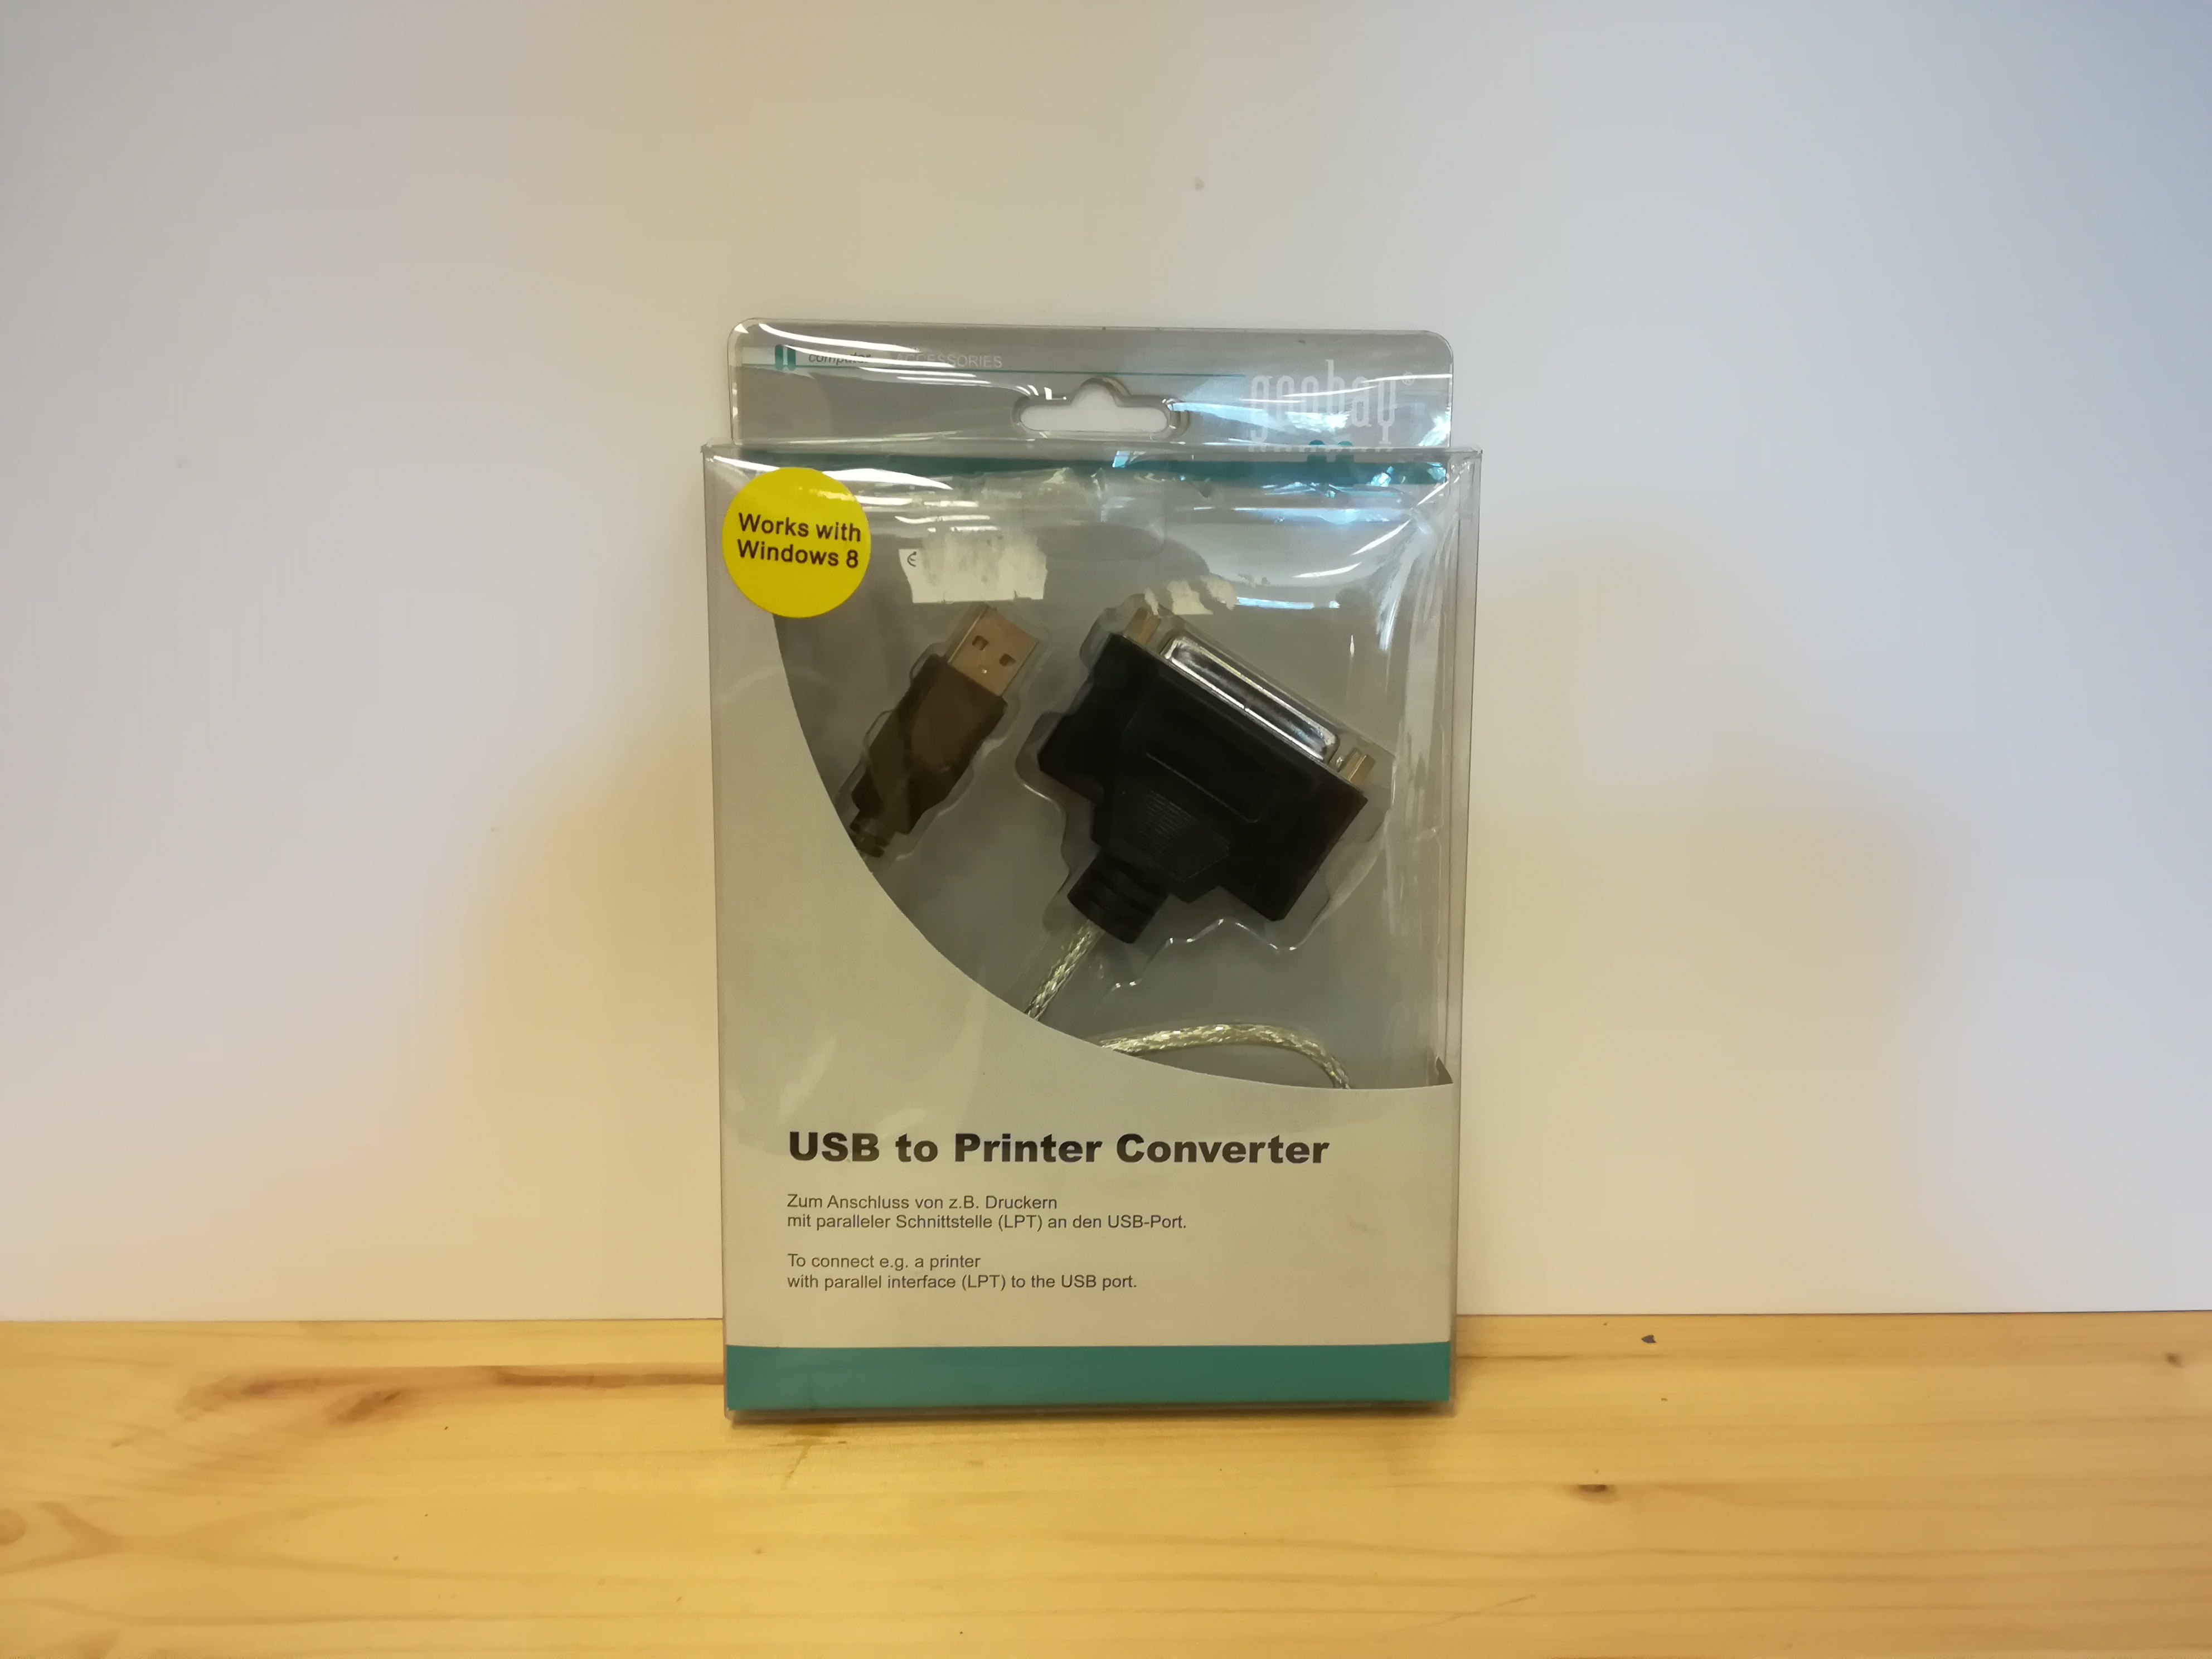 USB to Printer Converter délky 0,9m